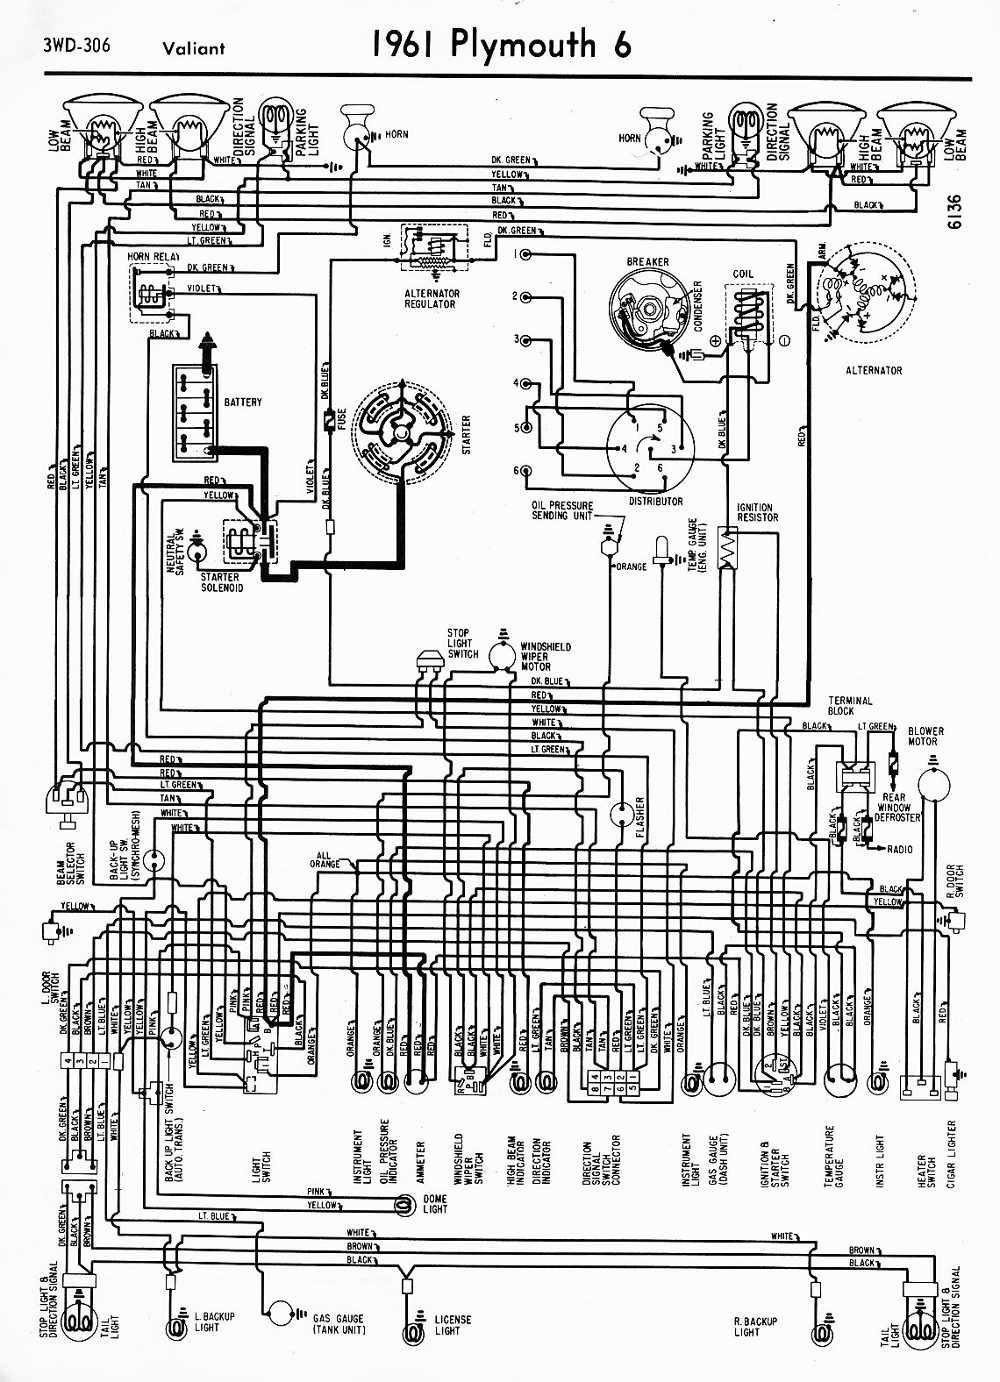 wiring diagrams of 1961 plymouth 6 valiant?t\\\=1508746019 1955 plymouth wiring diagram 1955 wiring diagrams instruction 1970 dodge coronet wiring diagram at mifinder.co